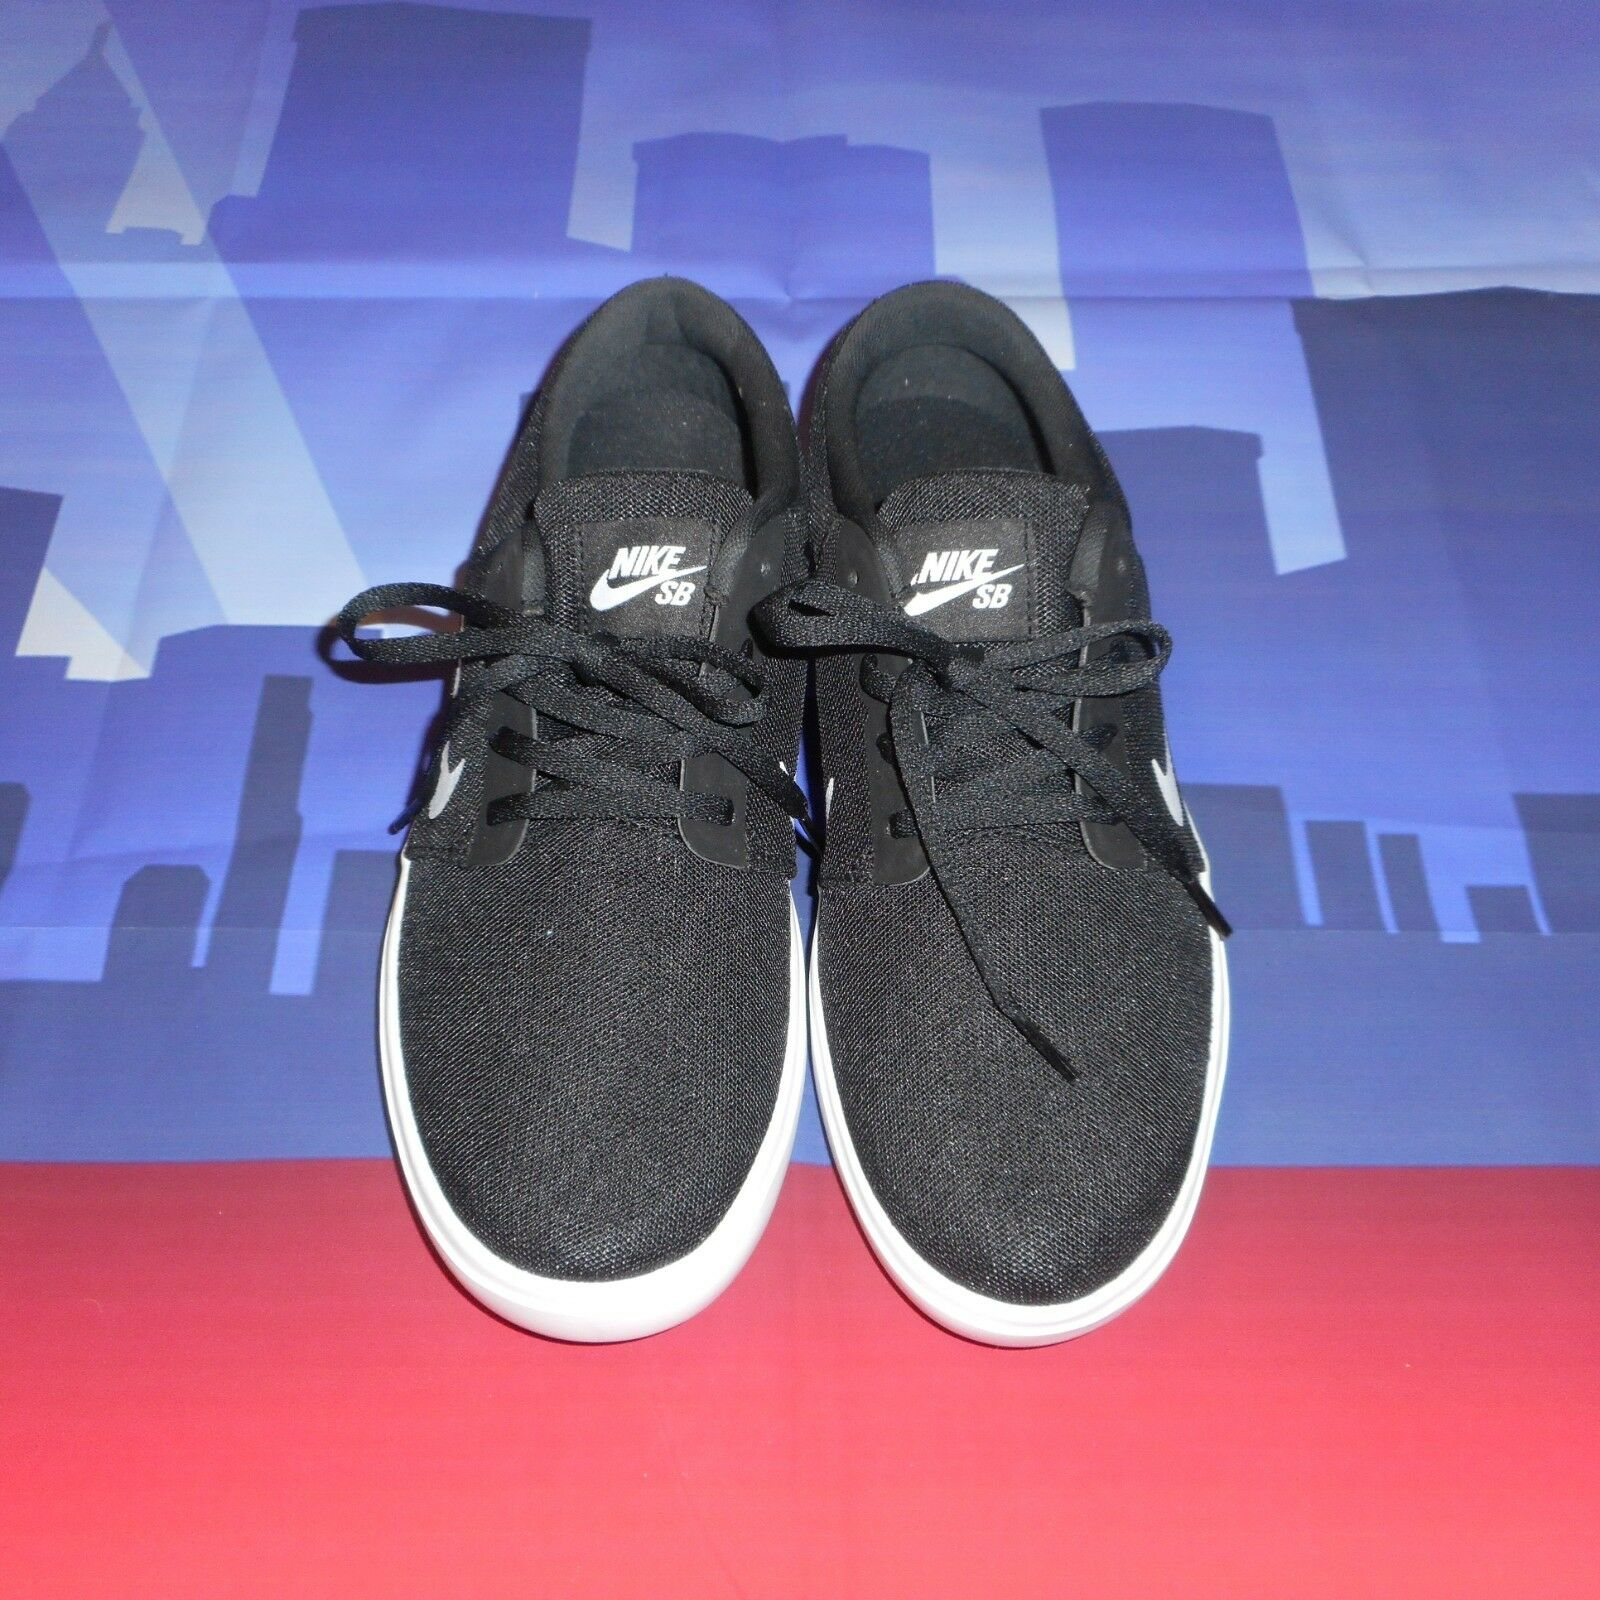 NIKE Sz 8 Black White Laces Casual Sneakers